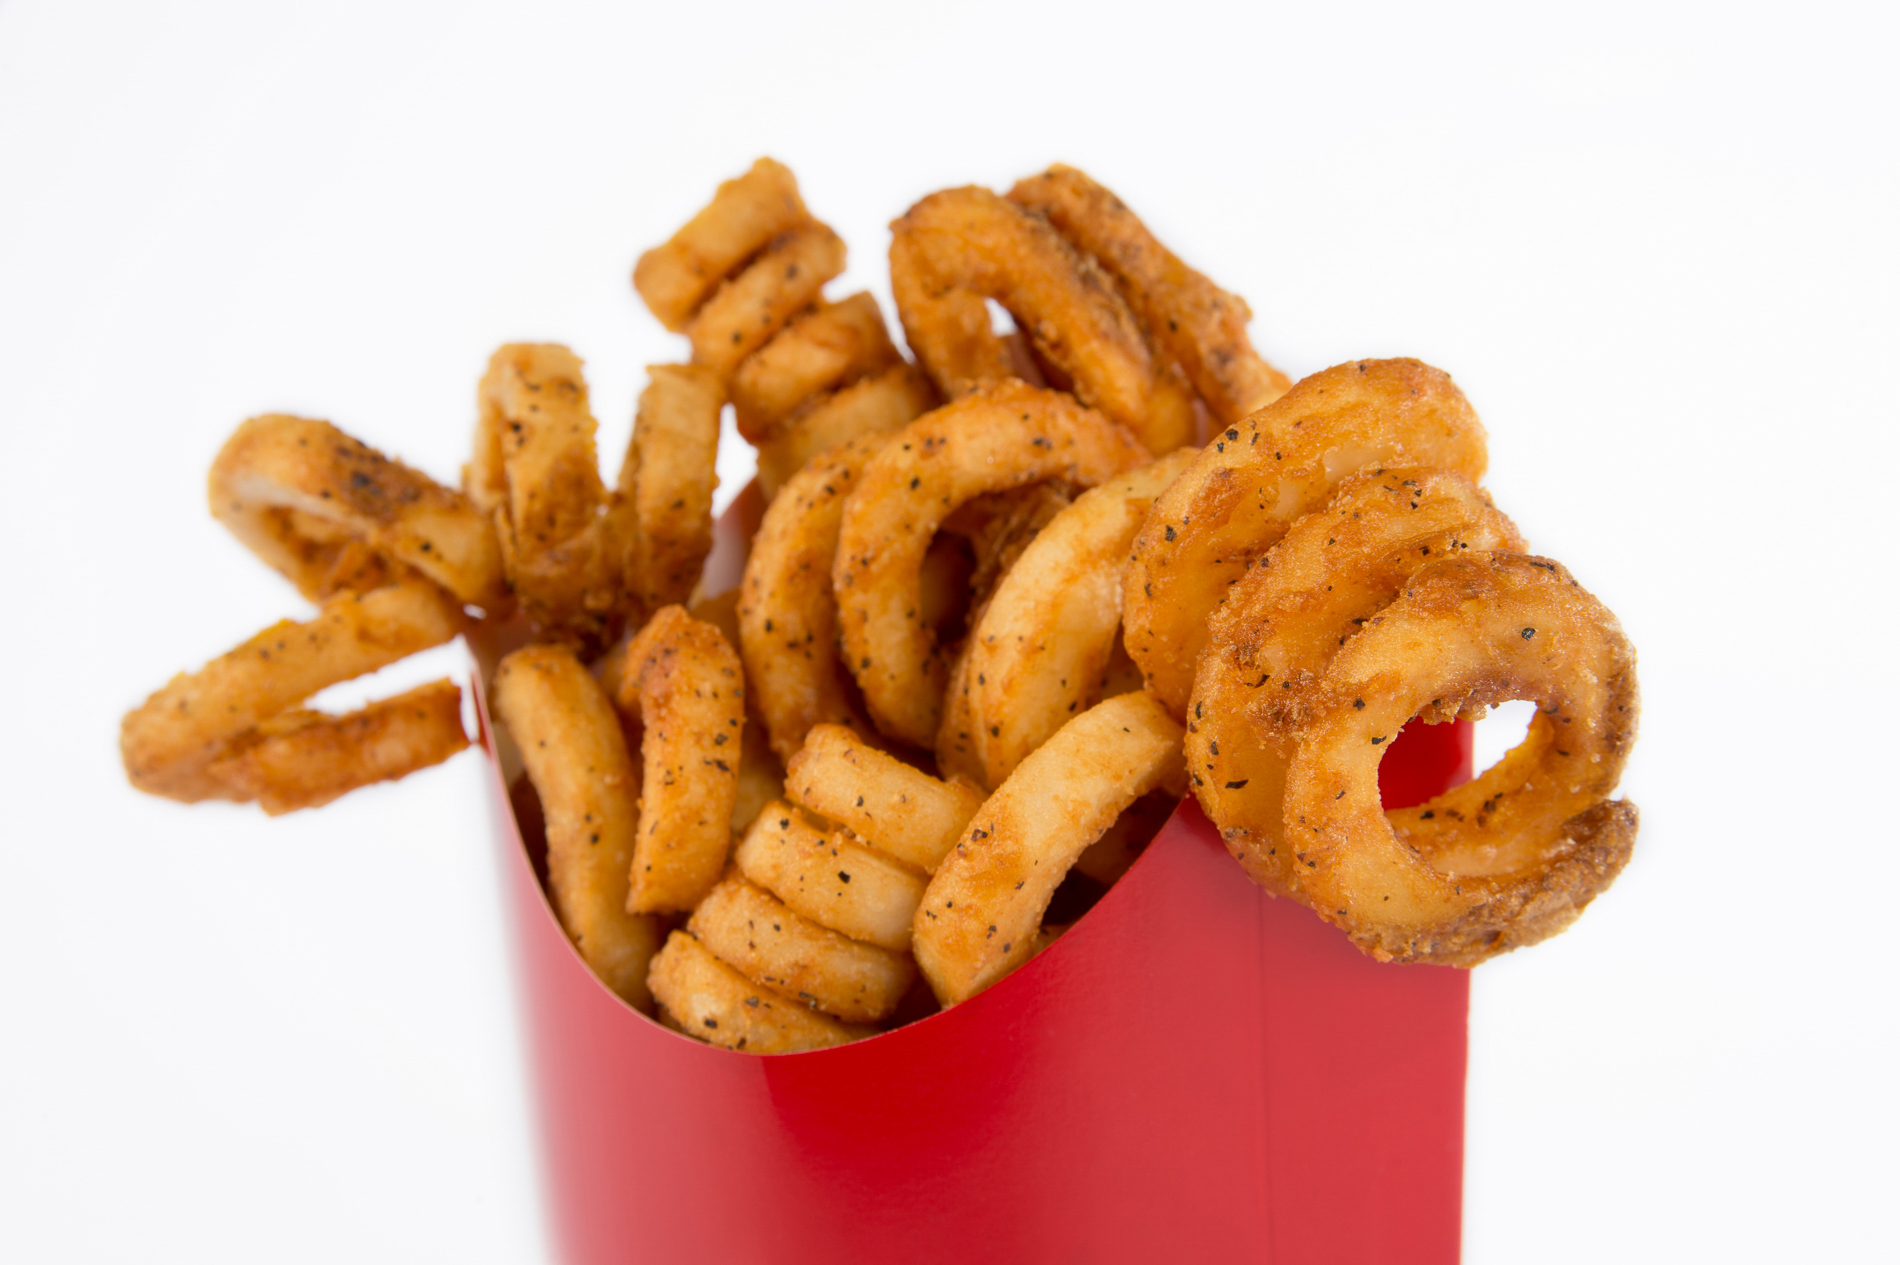 Curly Fries anyone?